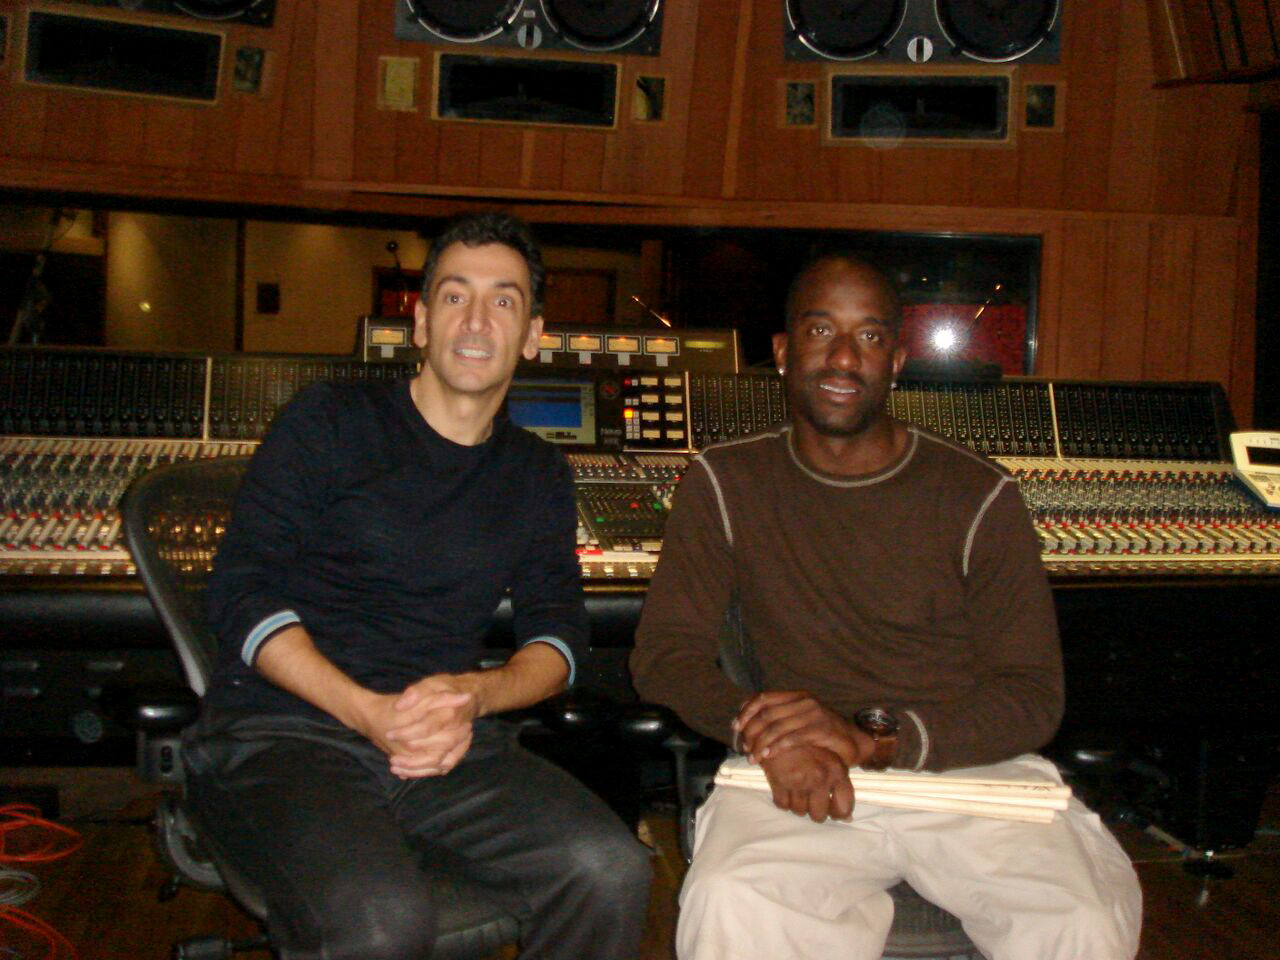 David Frangioni and Brian Frasier-Moore